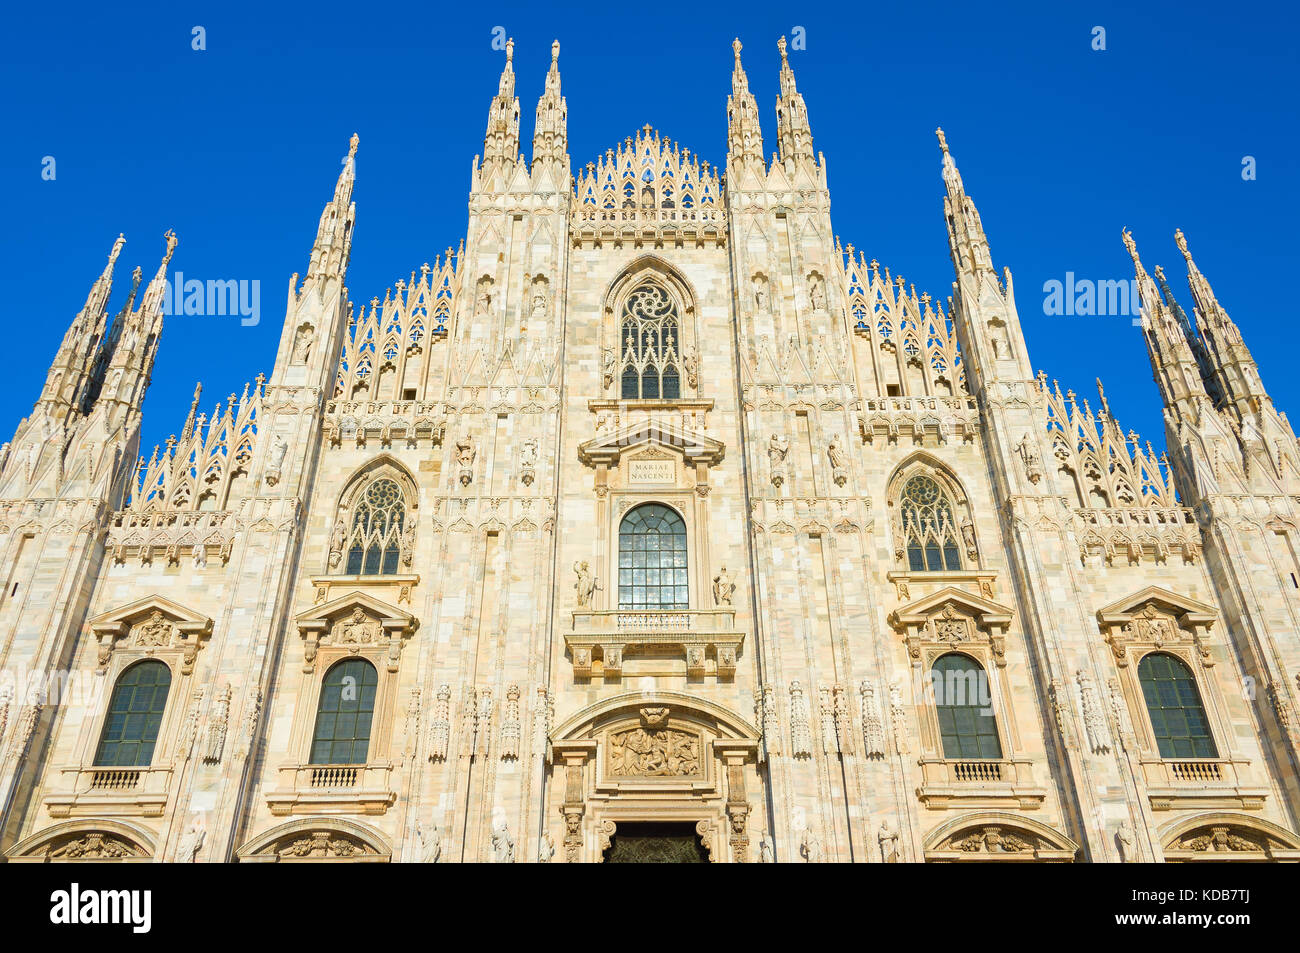 Famous Milan Cathedral (Duomo Milano). Italy - Stock Image